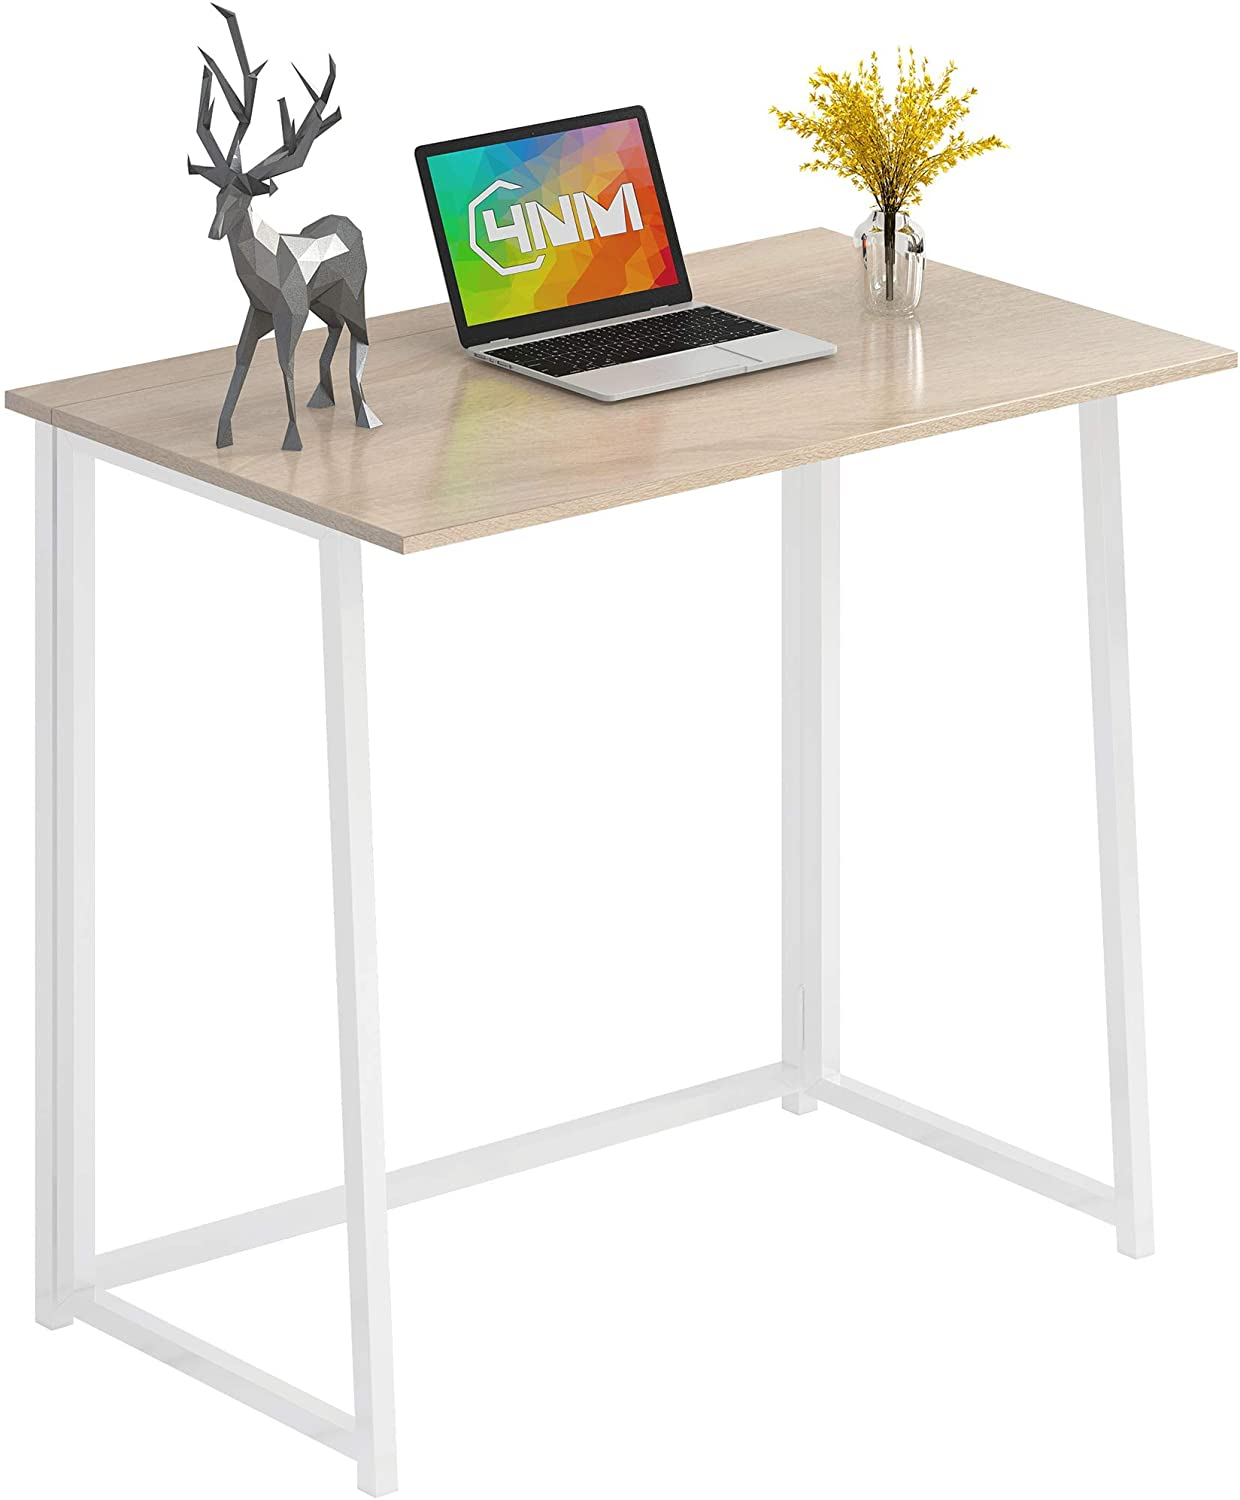 Home Office Desk Study Writing Table for Small Space